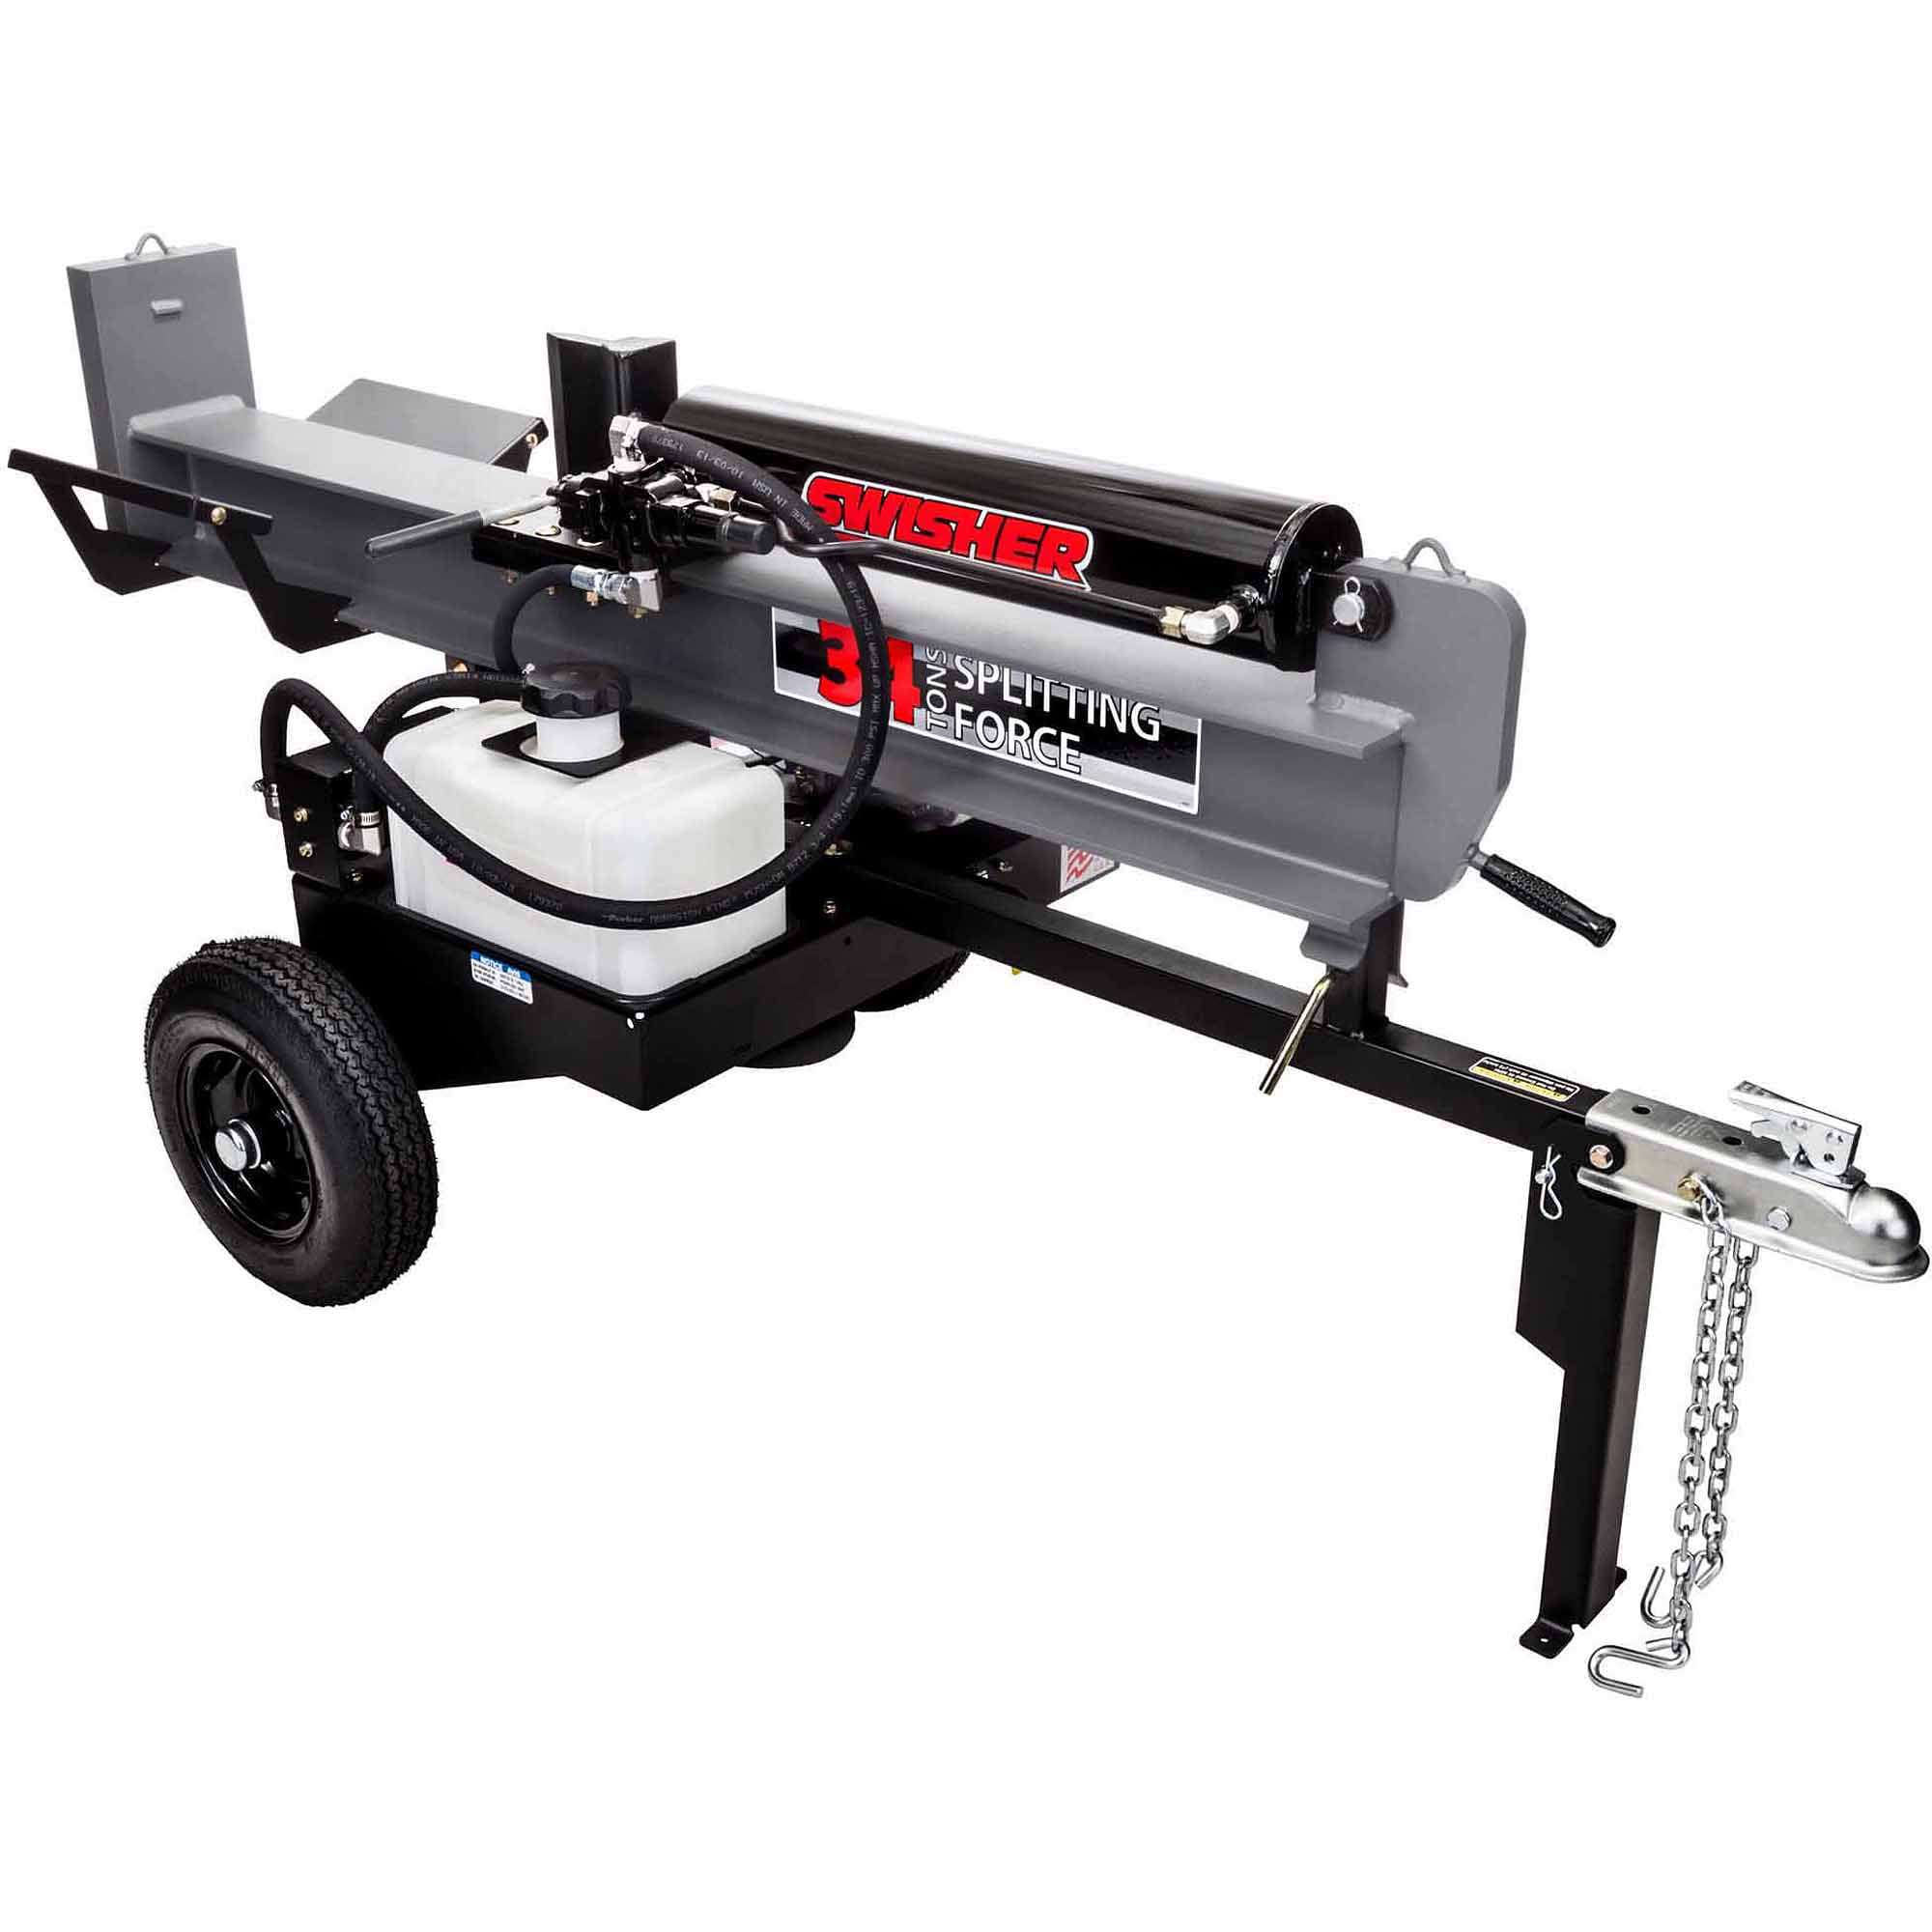 6.75 Gross Torque 22-Ton Log Splitter by Swisher Acquisition, Inc